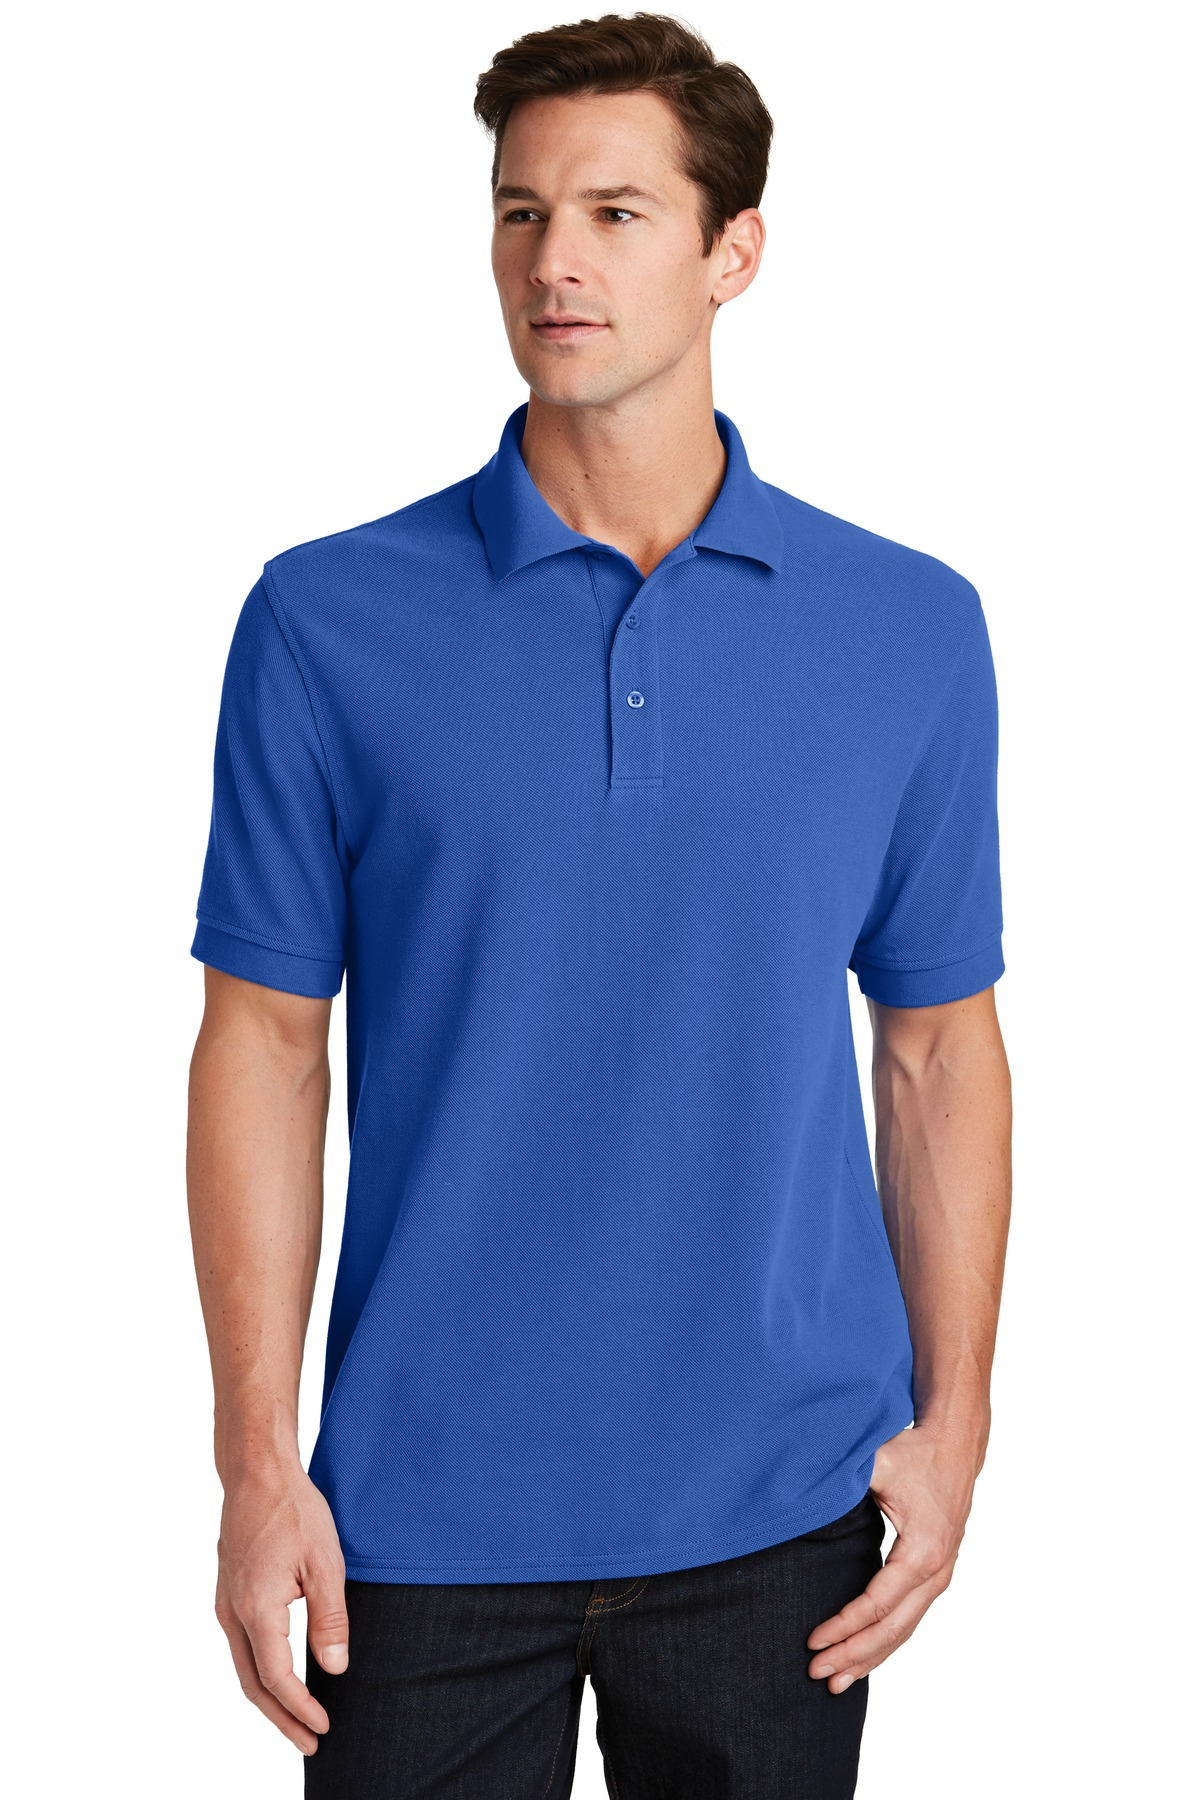 Port & Company ®  Combed Ring Spun Pique Polo. KP1500 - Royal